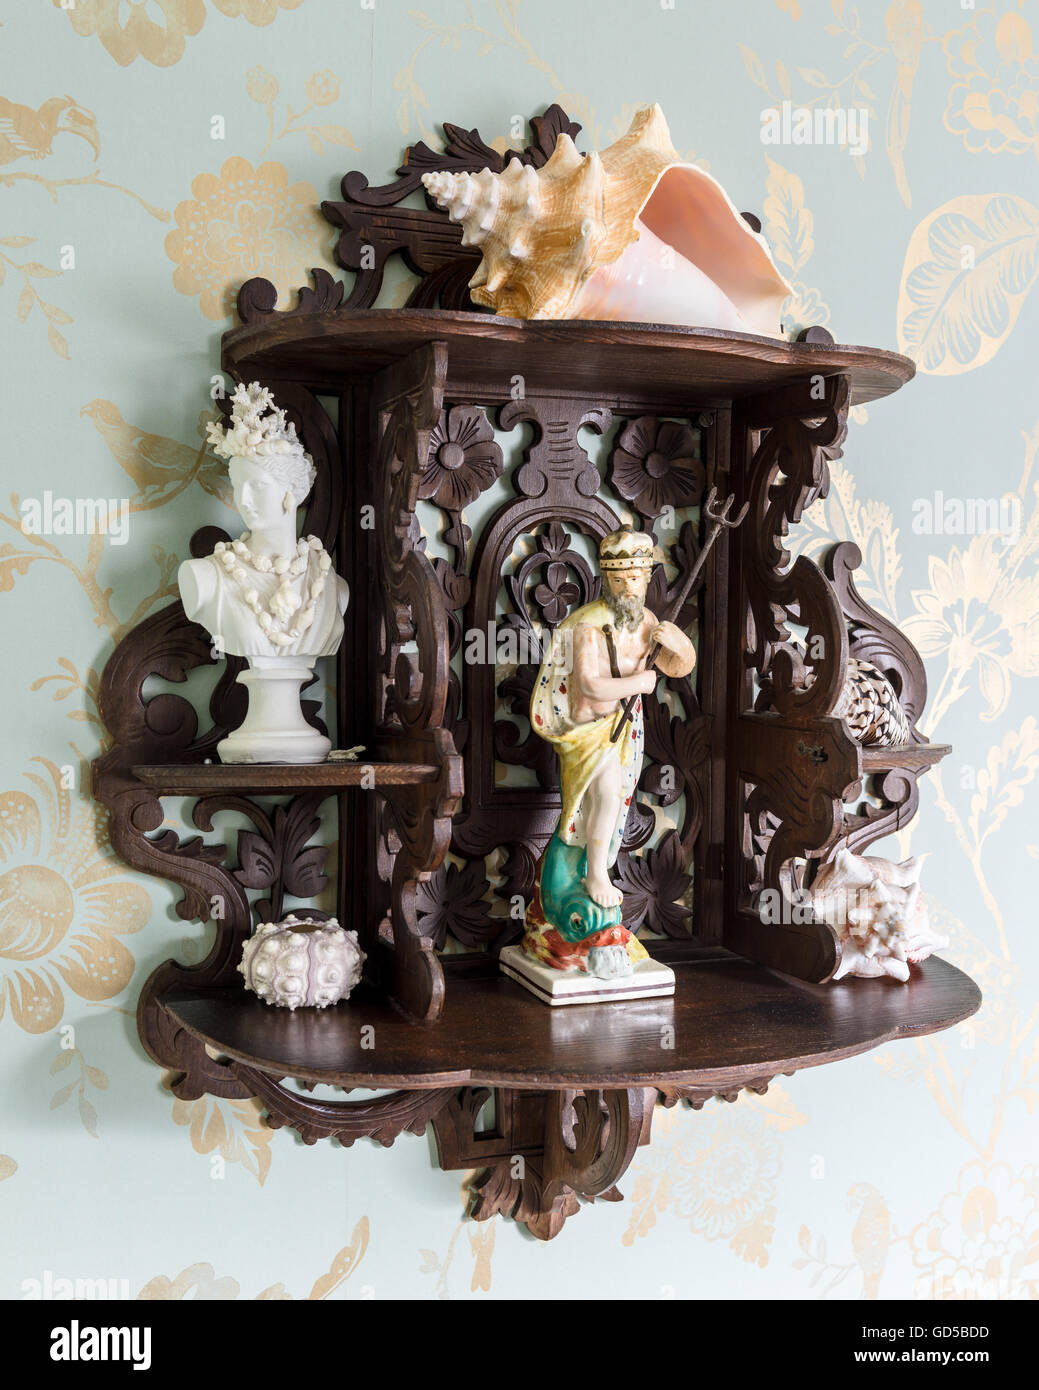 Staffordshire figures and shells on decorative hanging shelf with Colefax & Fowler wallpaper backdrop - Stock Image